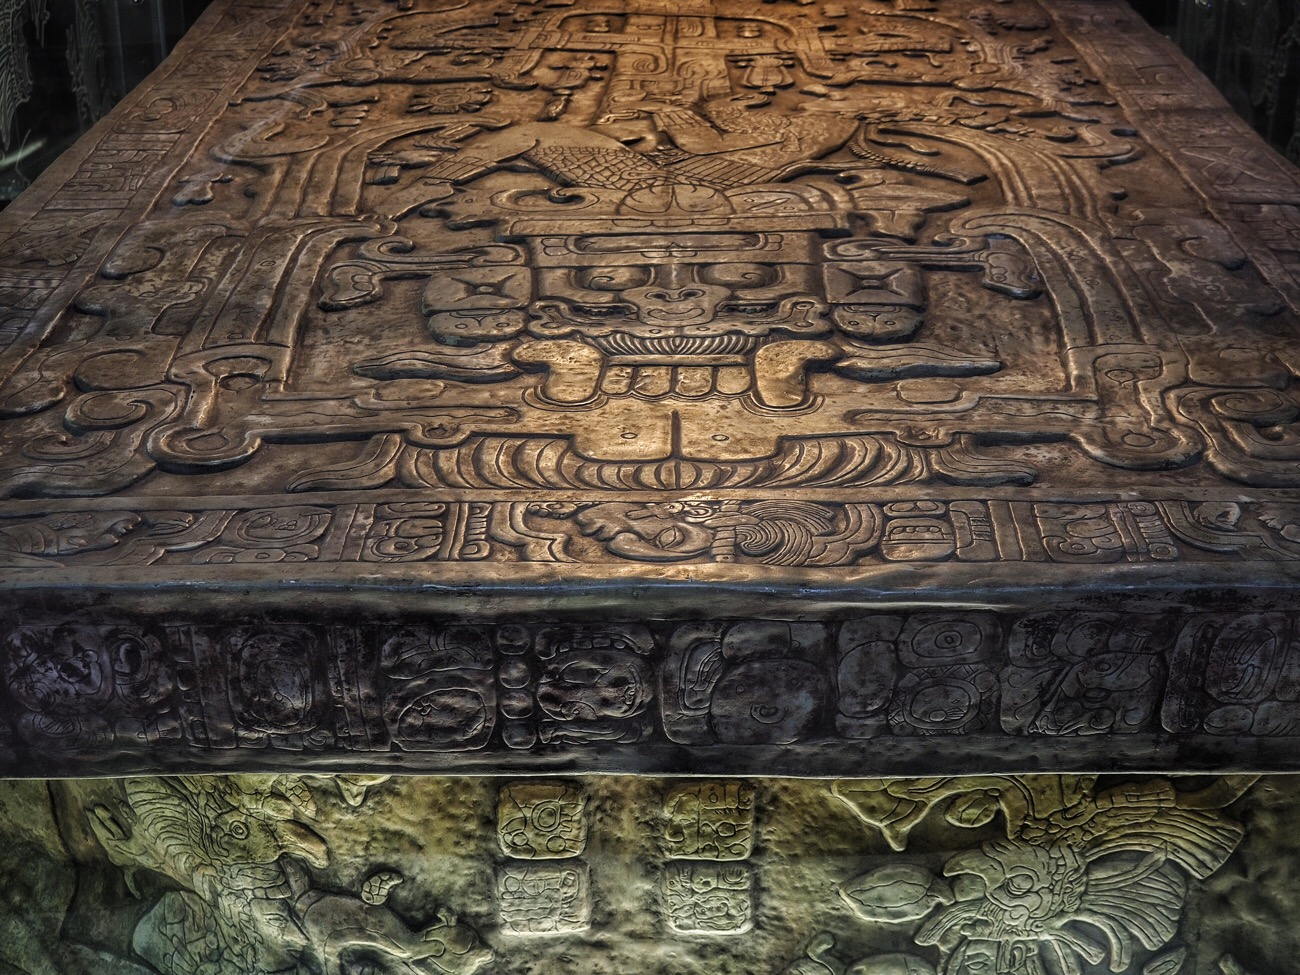 The stone coffin of Pakal